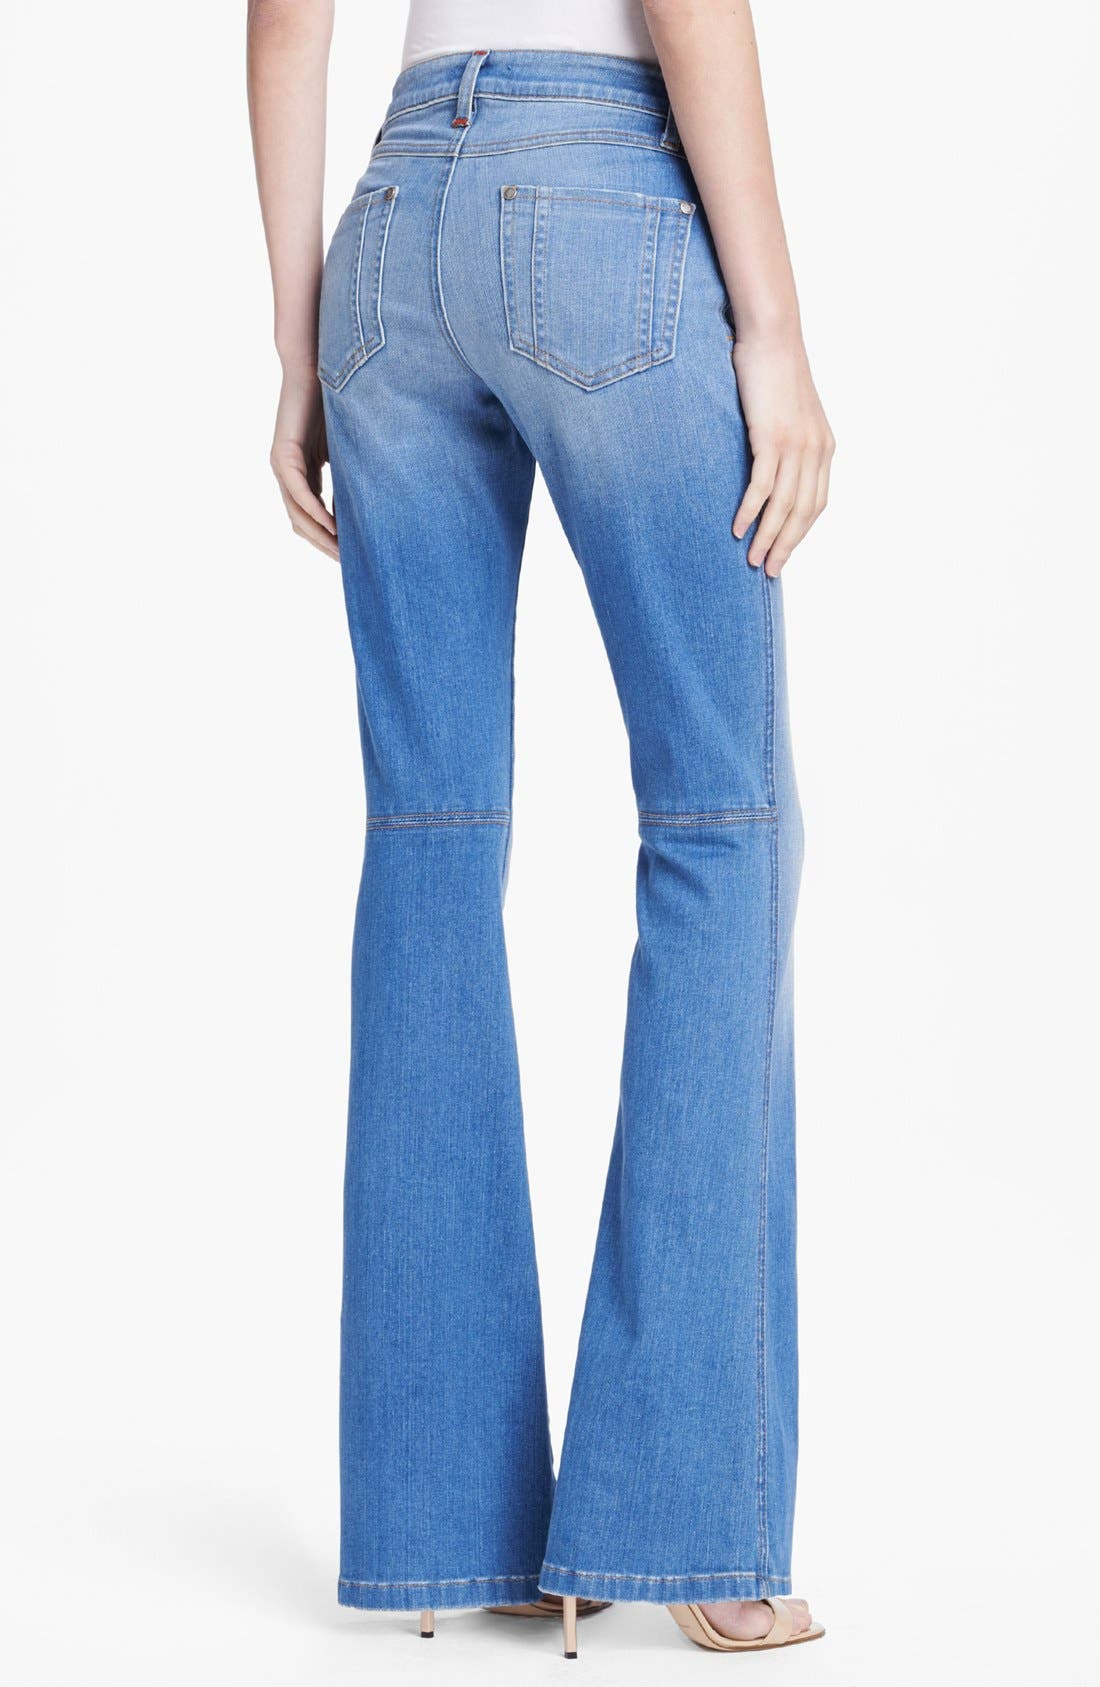 'Stacy' Distressed Bell Bottom Jeans,                             Alternate thumbnail 4, color,                             453